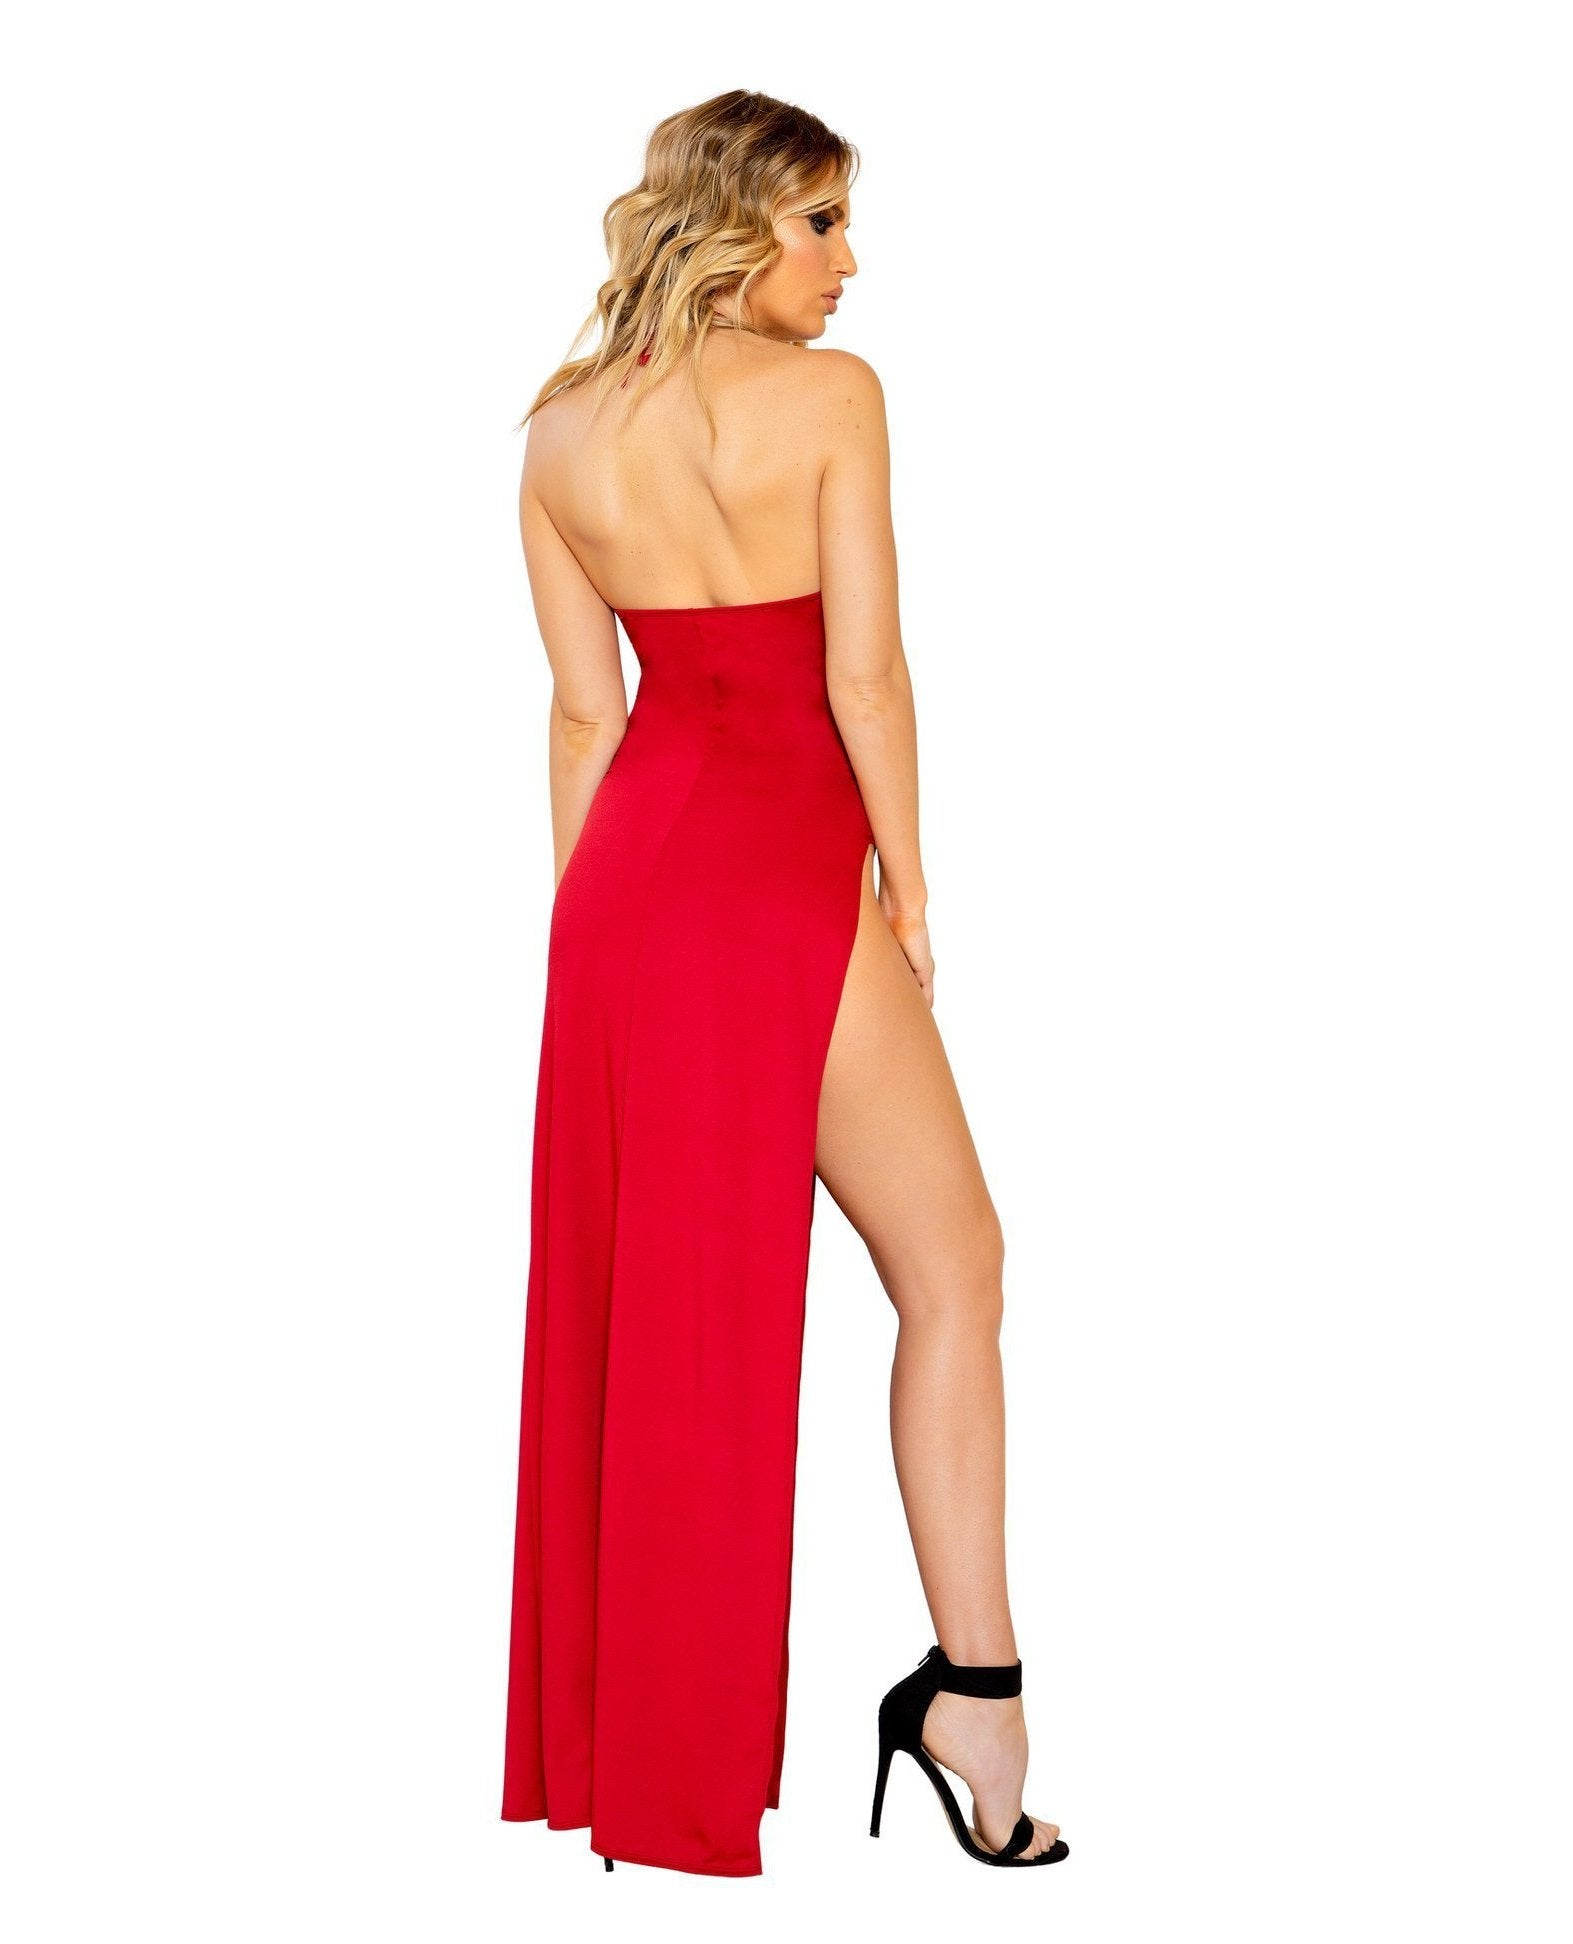 Maxi Length Dress with Deep V Detail and High Slit club wear Size SmallColor RedNakees